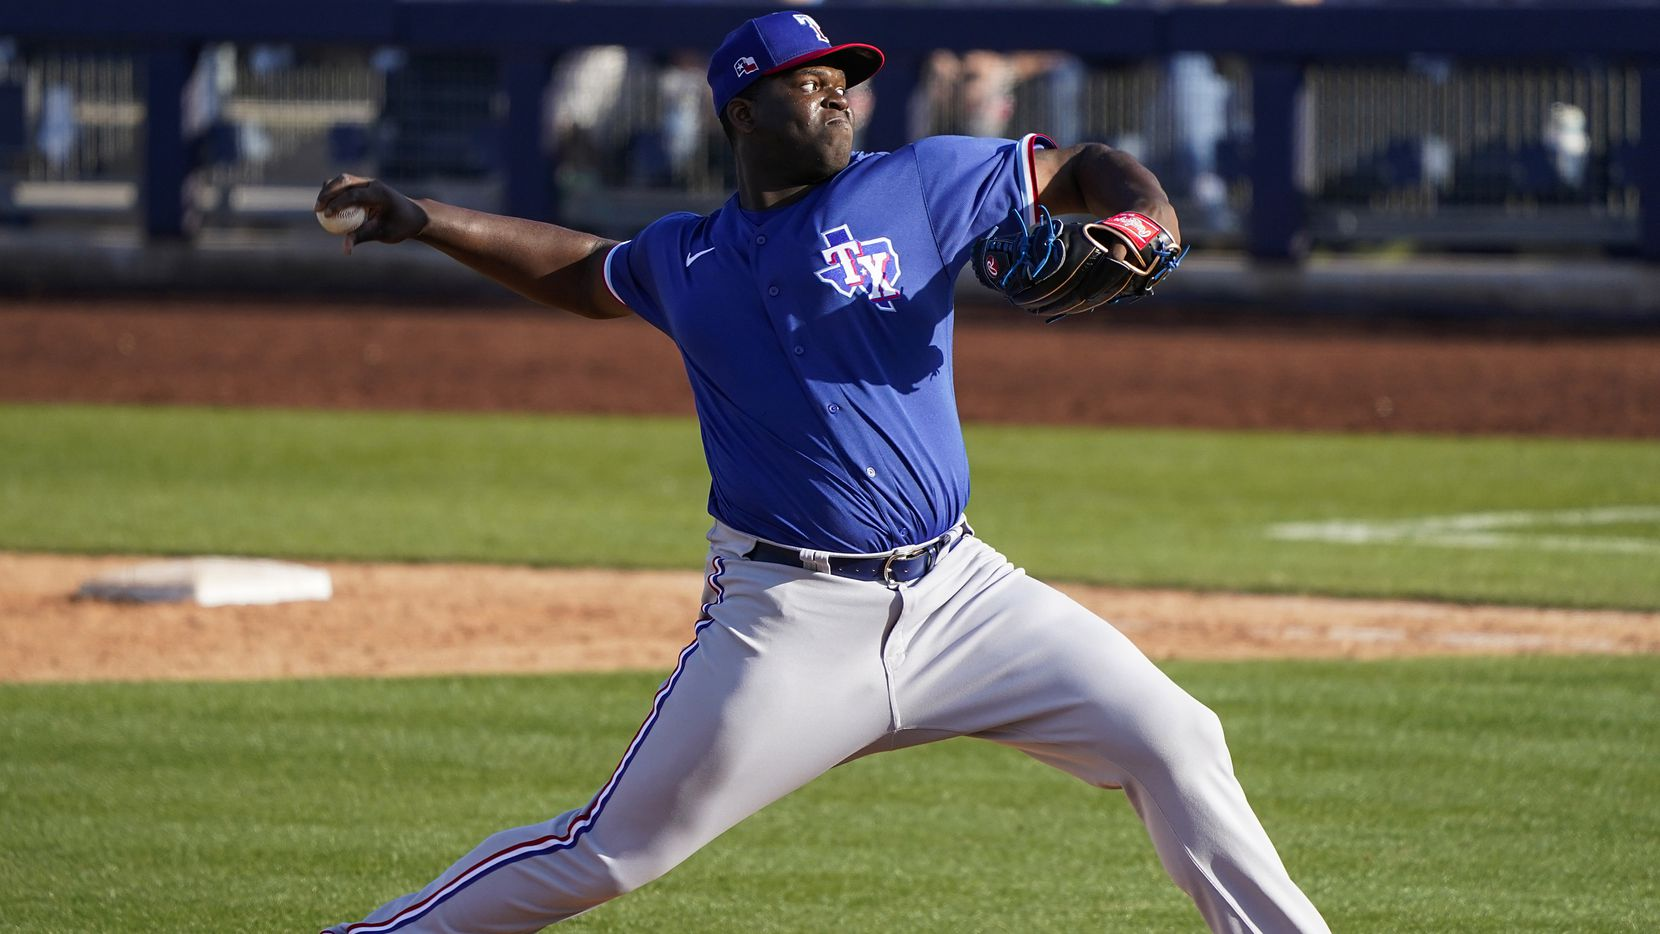 Rangers RHP Demarcus Evans (lat muscle strain) unlikely to be ready for start of season